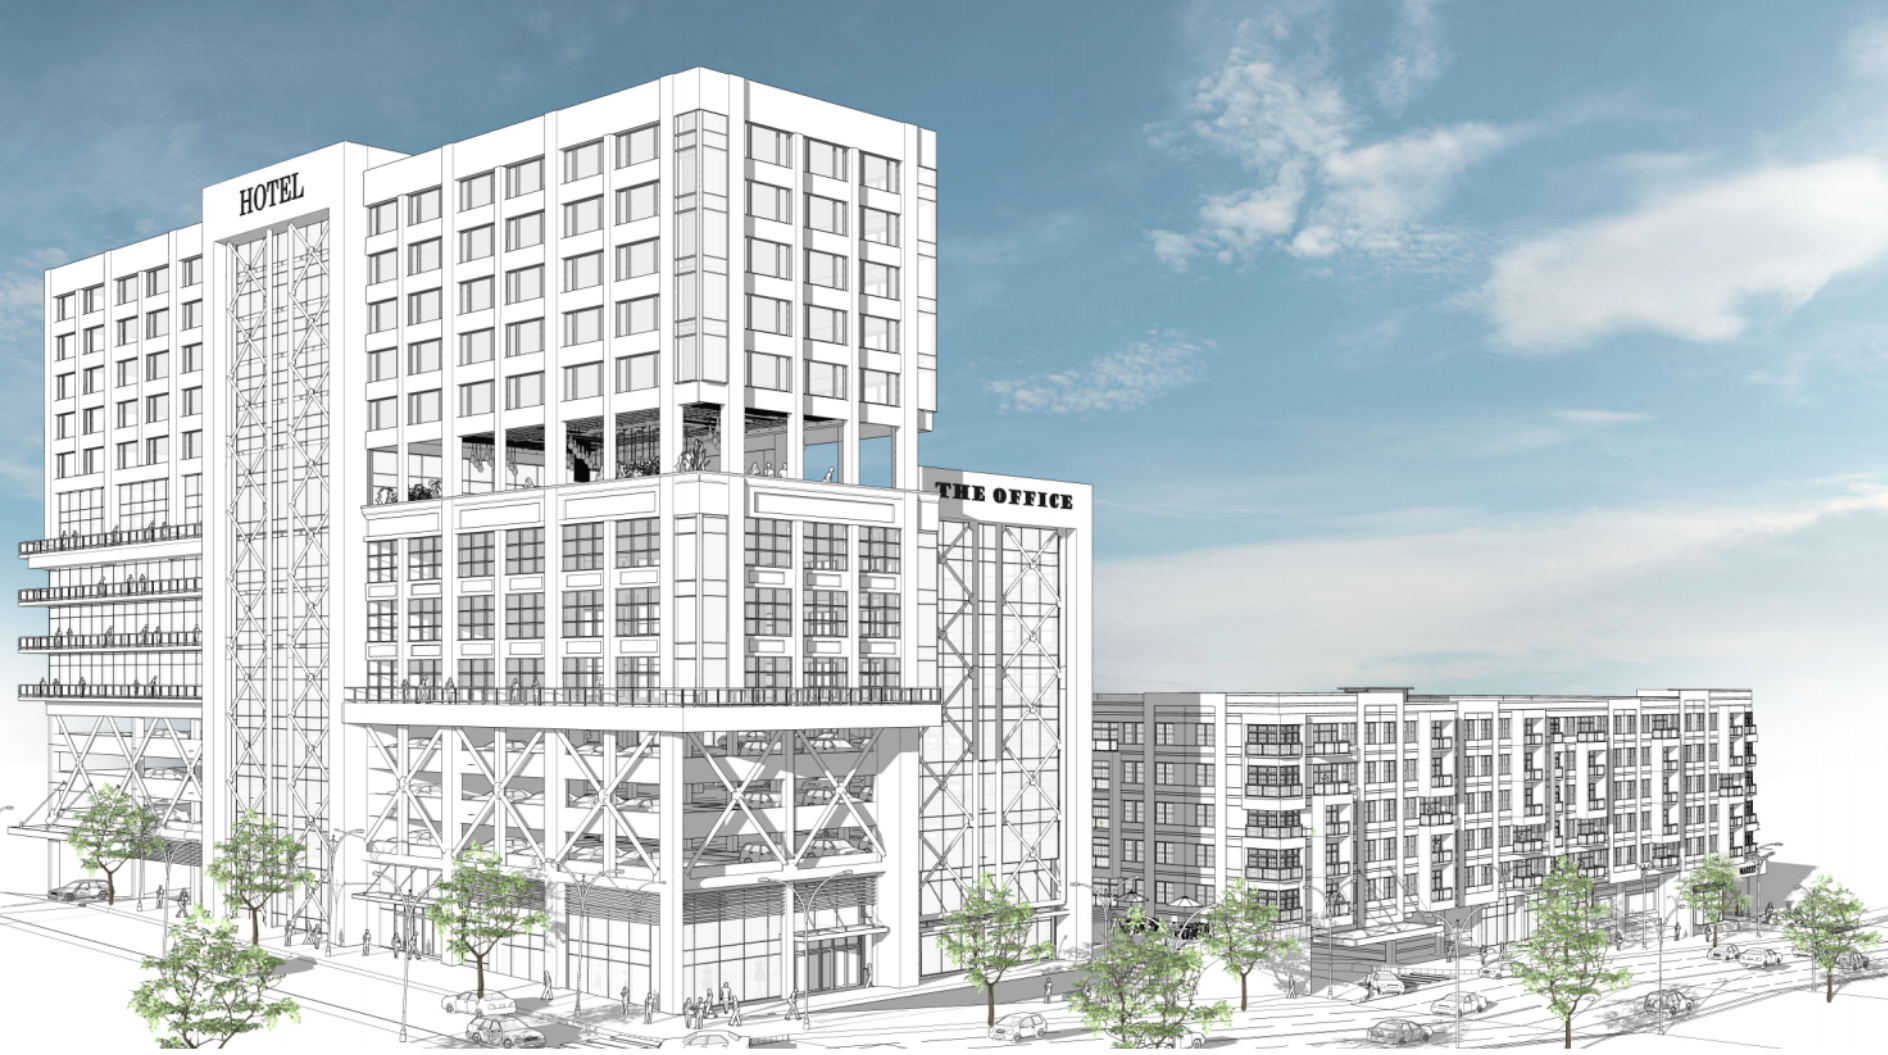 Renderings show early vision for hotel at West Midtown's under-construction Interlock